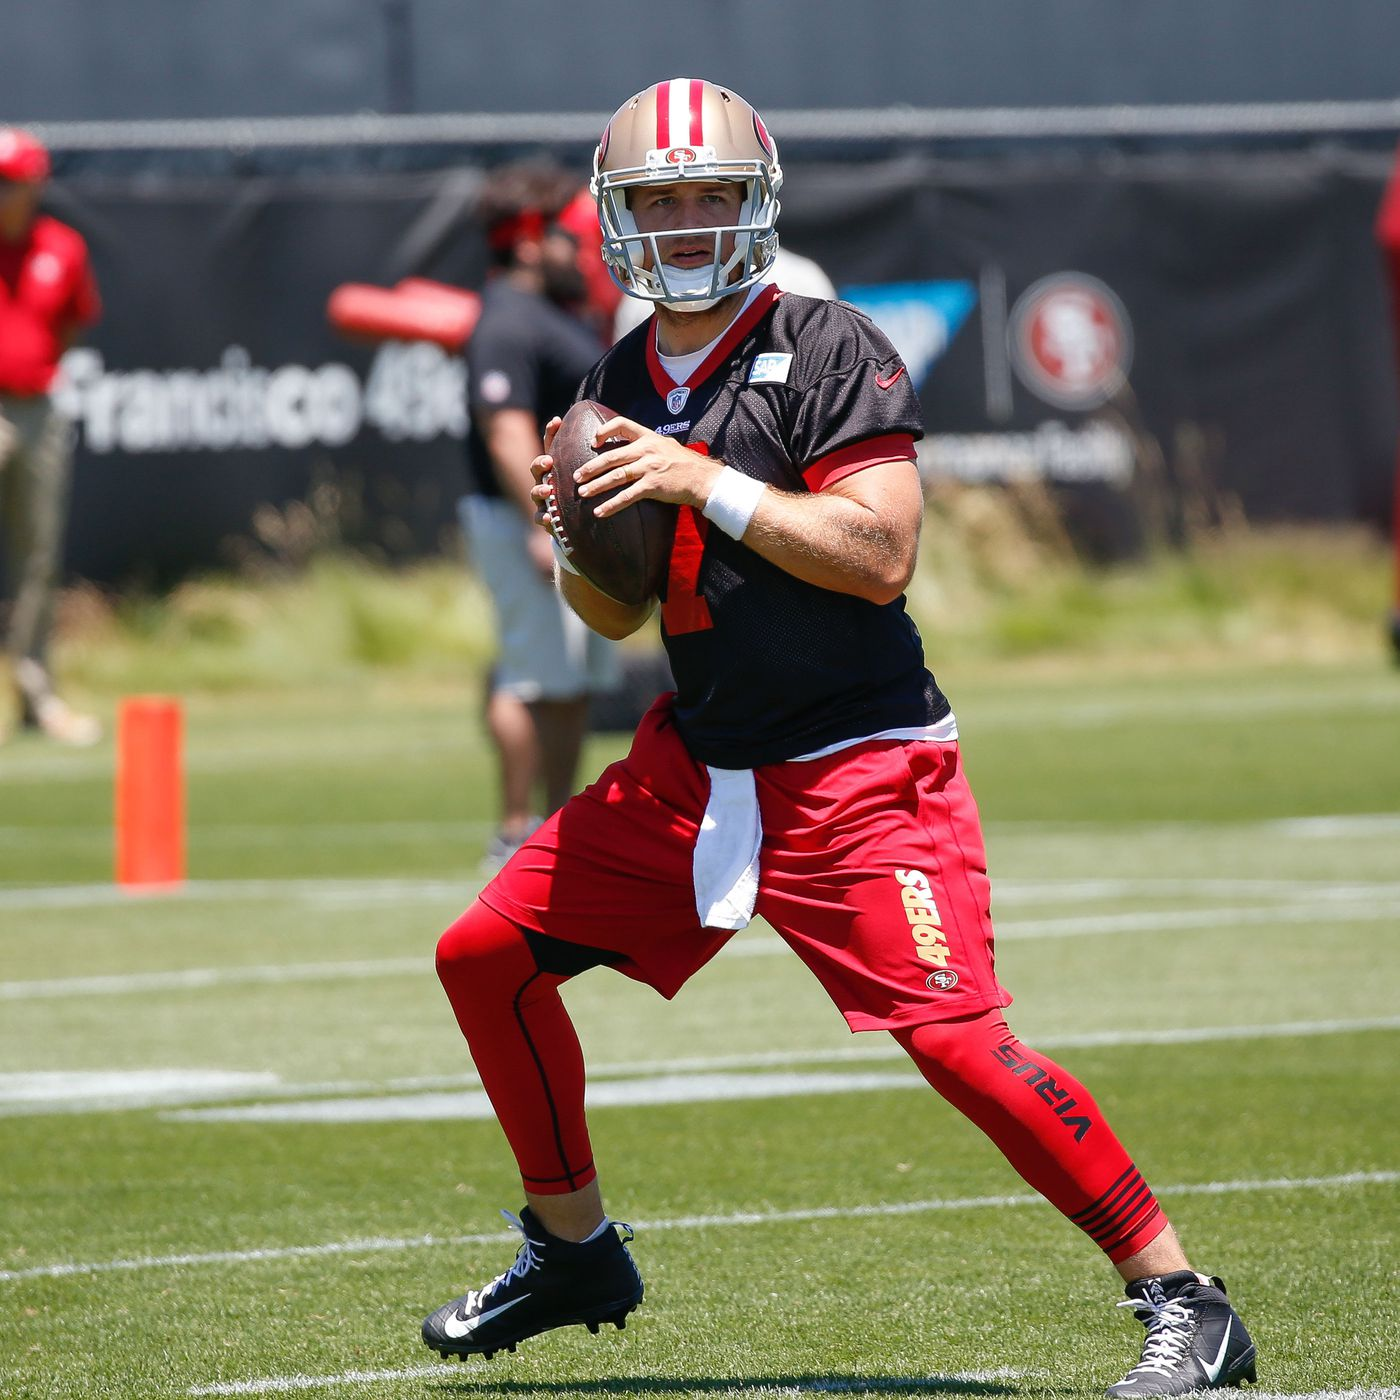 finest selection 91bf0 41a91 49ers roster breakdowns, 90-in-90: Nick Mullens - Niners Nation